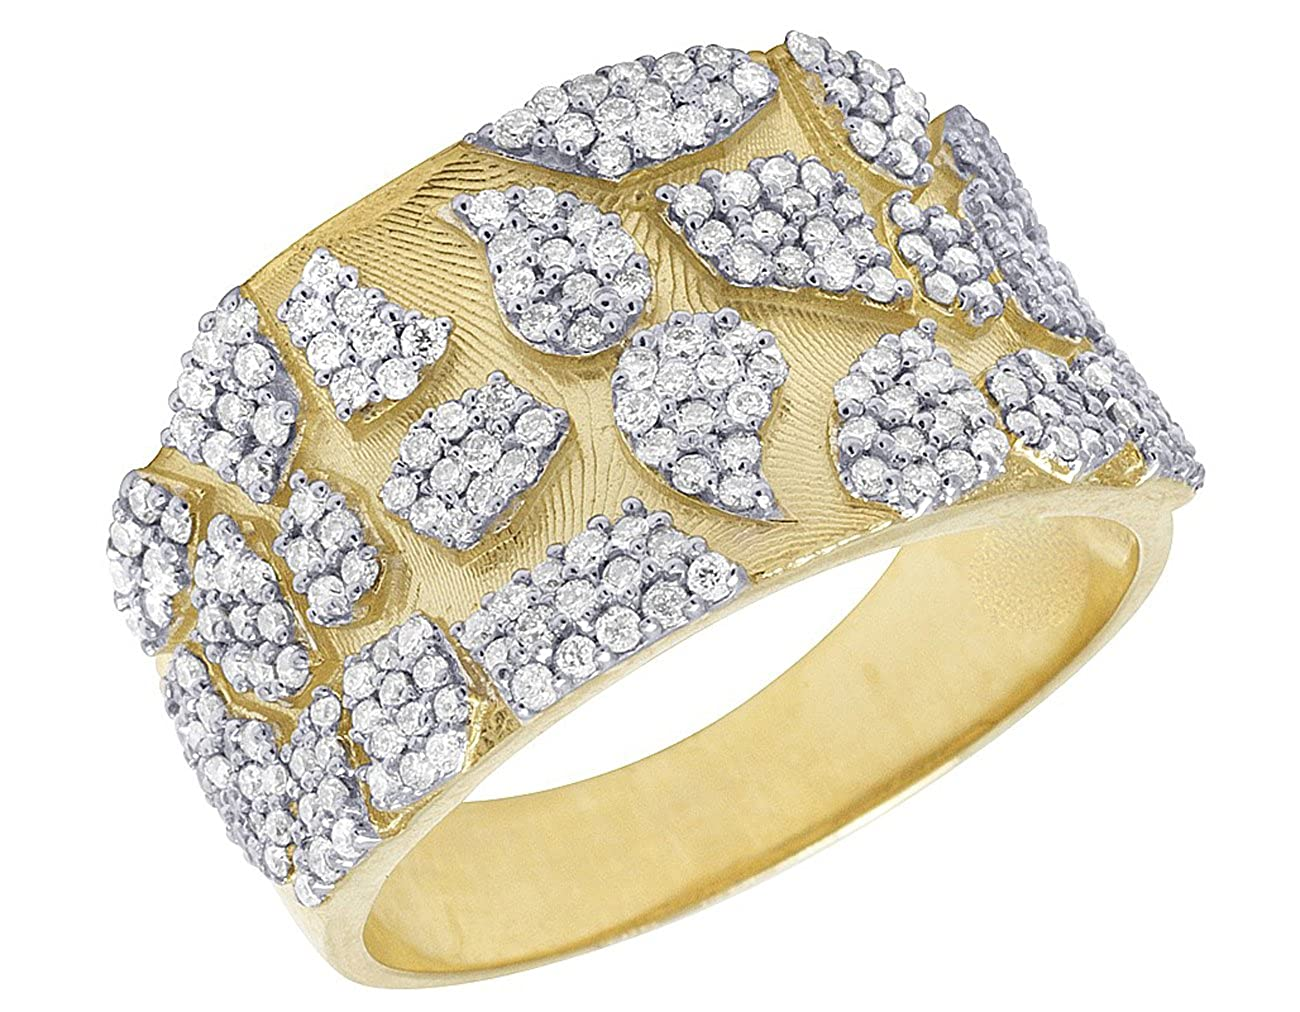 Jalash Prong Setting Mens Ring with Round CZ Diamonds in Yellow Gold Plating Gift for His